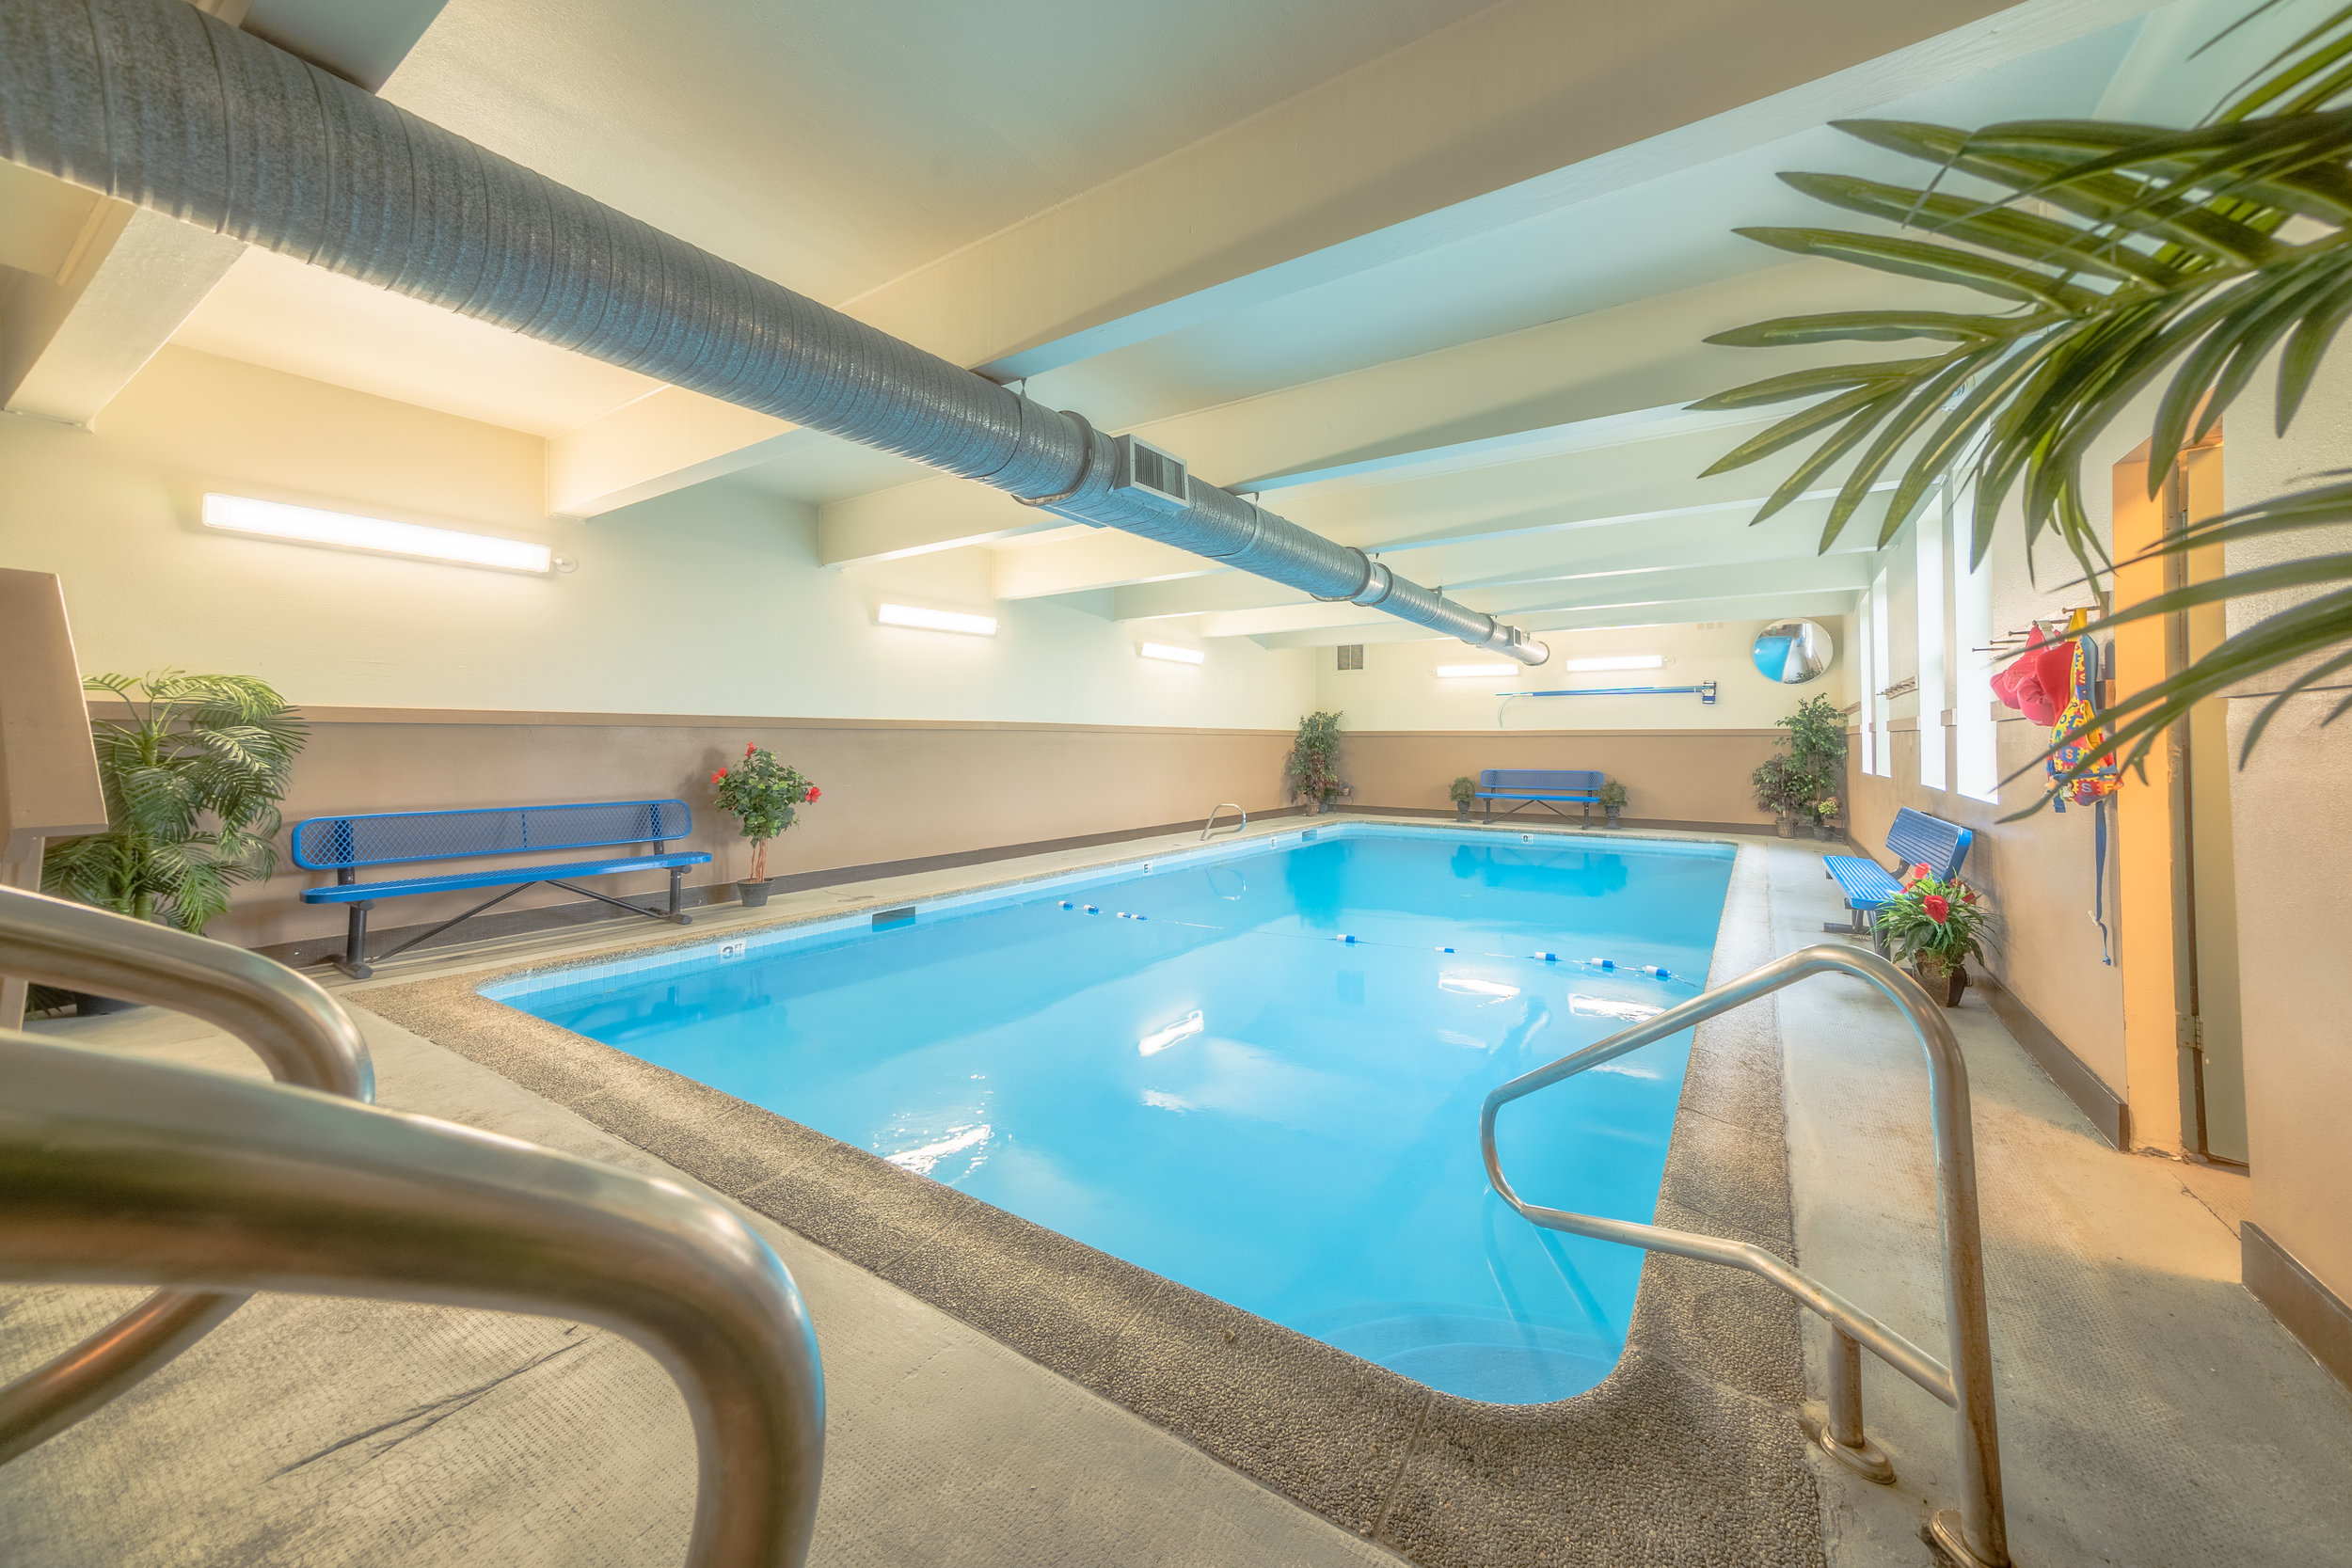 Indoor swimming pool and hot tub - Enjoy swimming and relaxing in the only indoor pool in Westport!